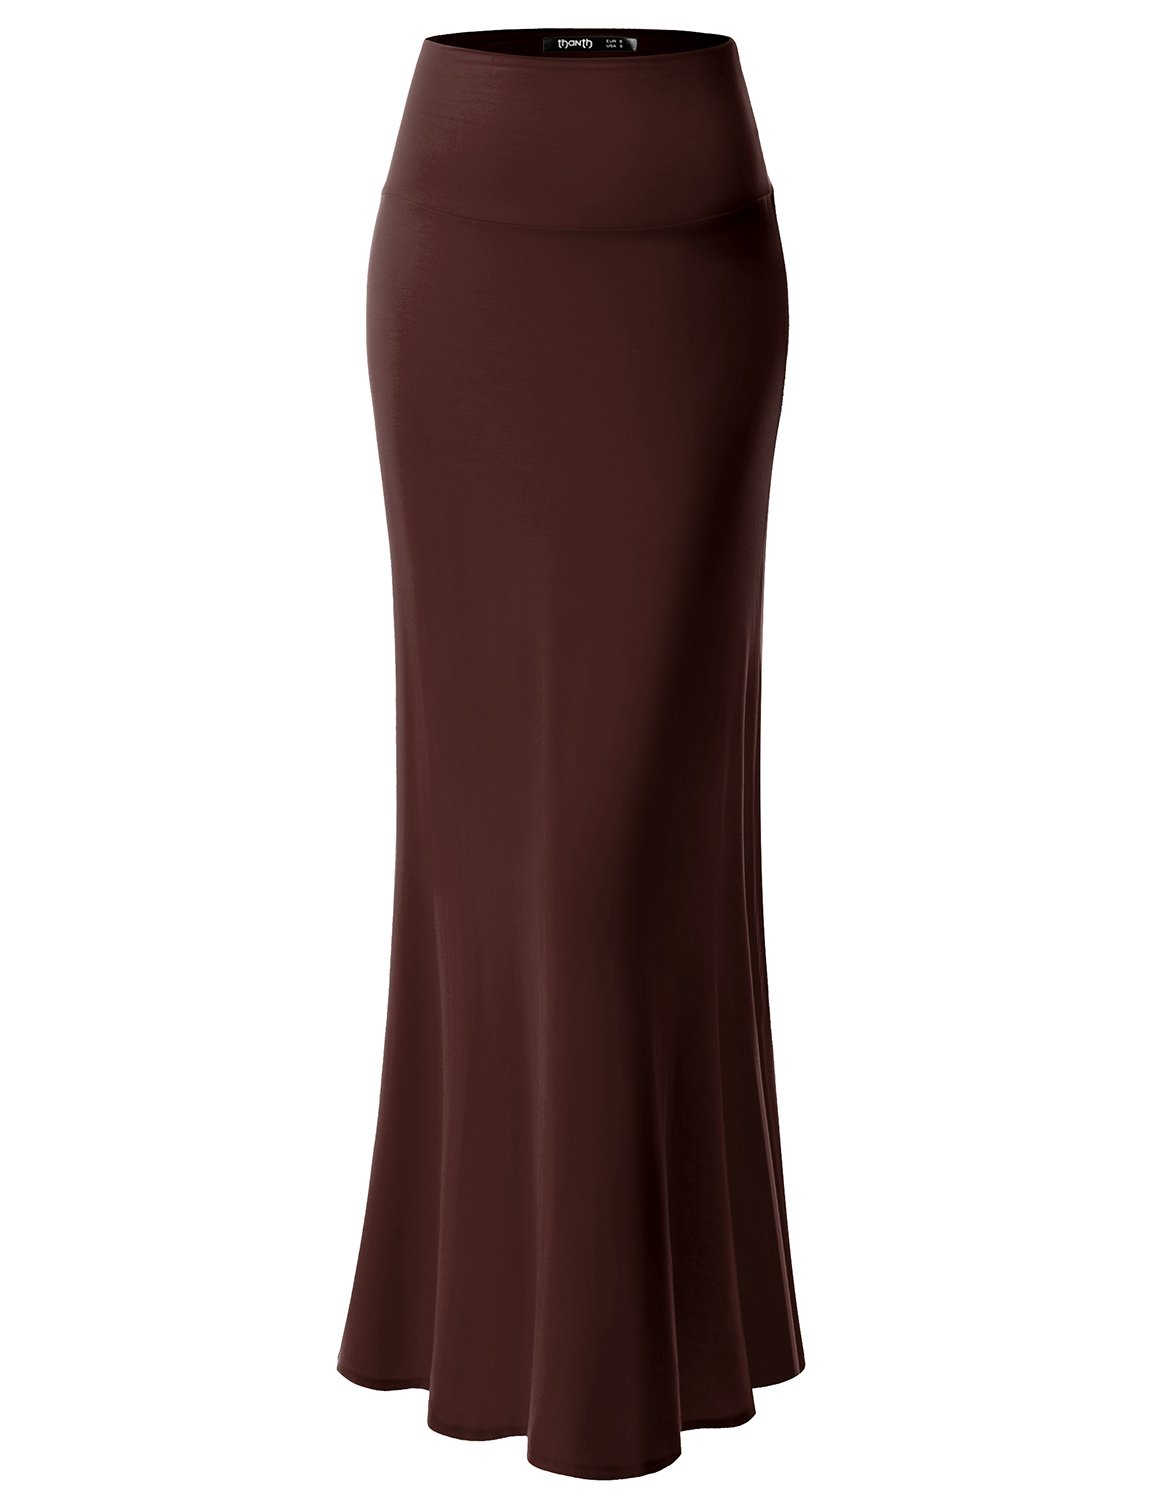 TWINTH Maxi Skirt Plus Size Long Skirt Offic Wear Circle Brown M